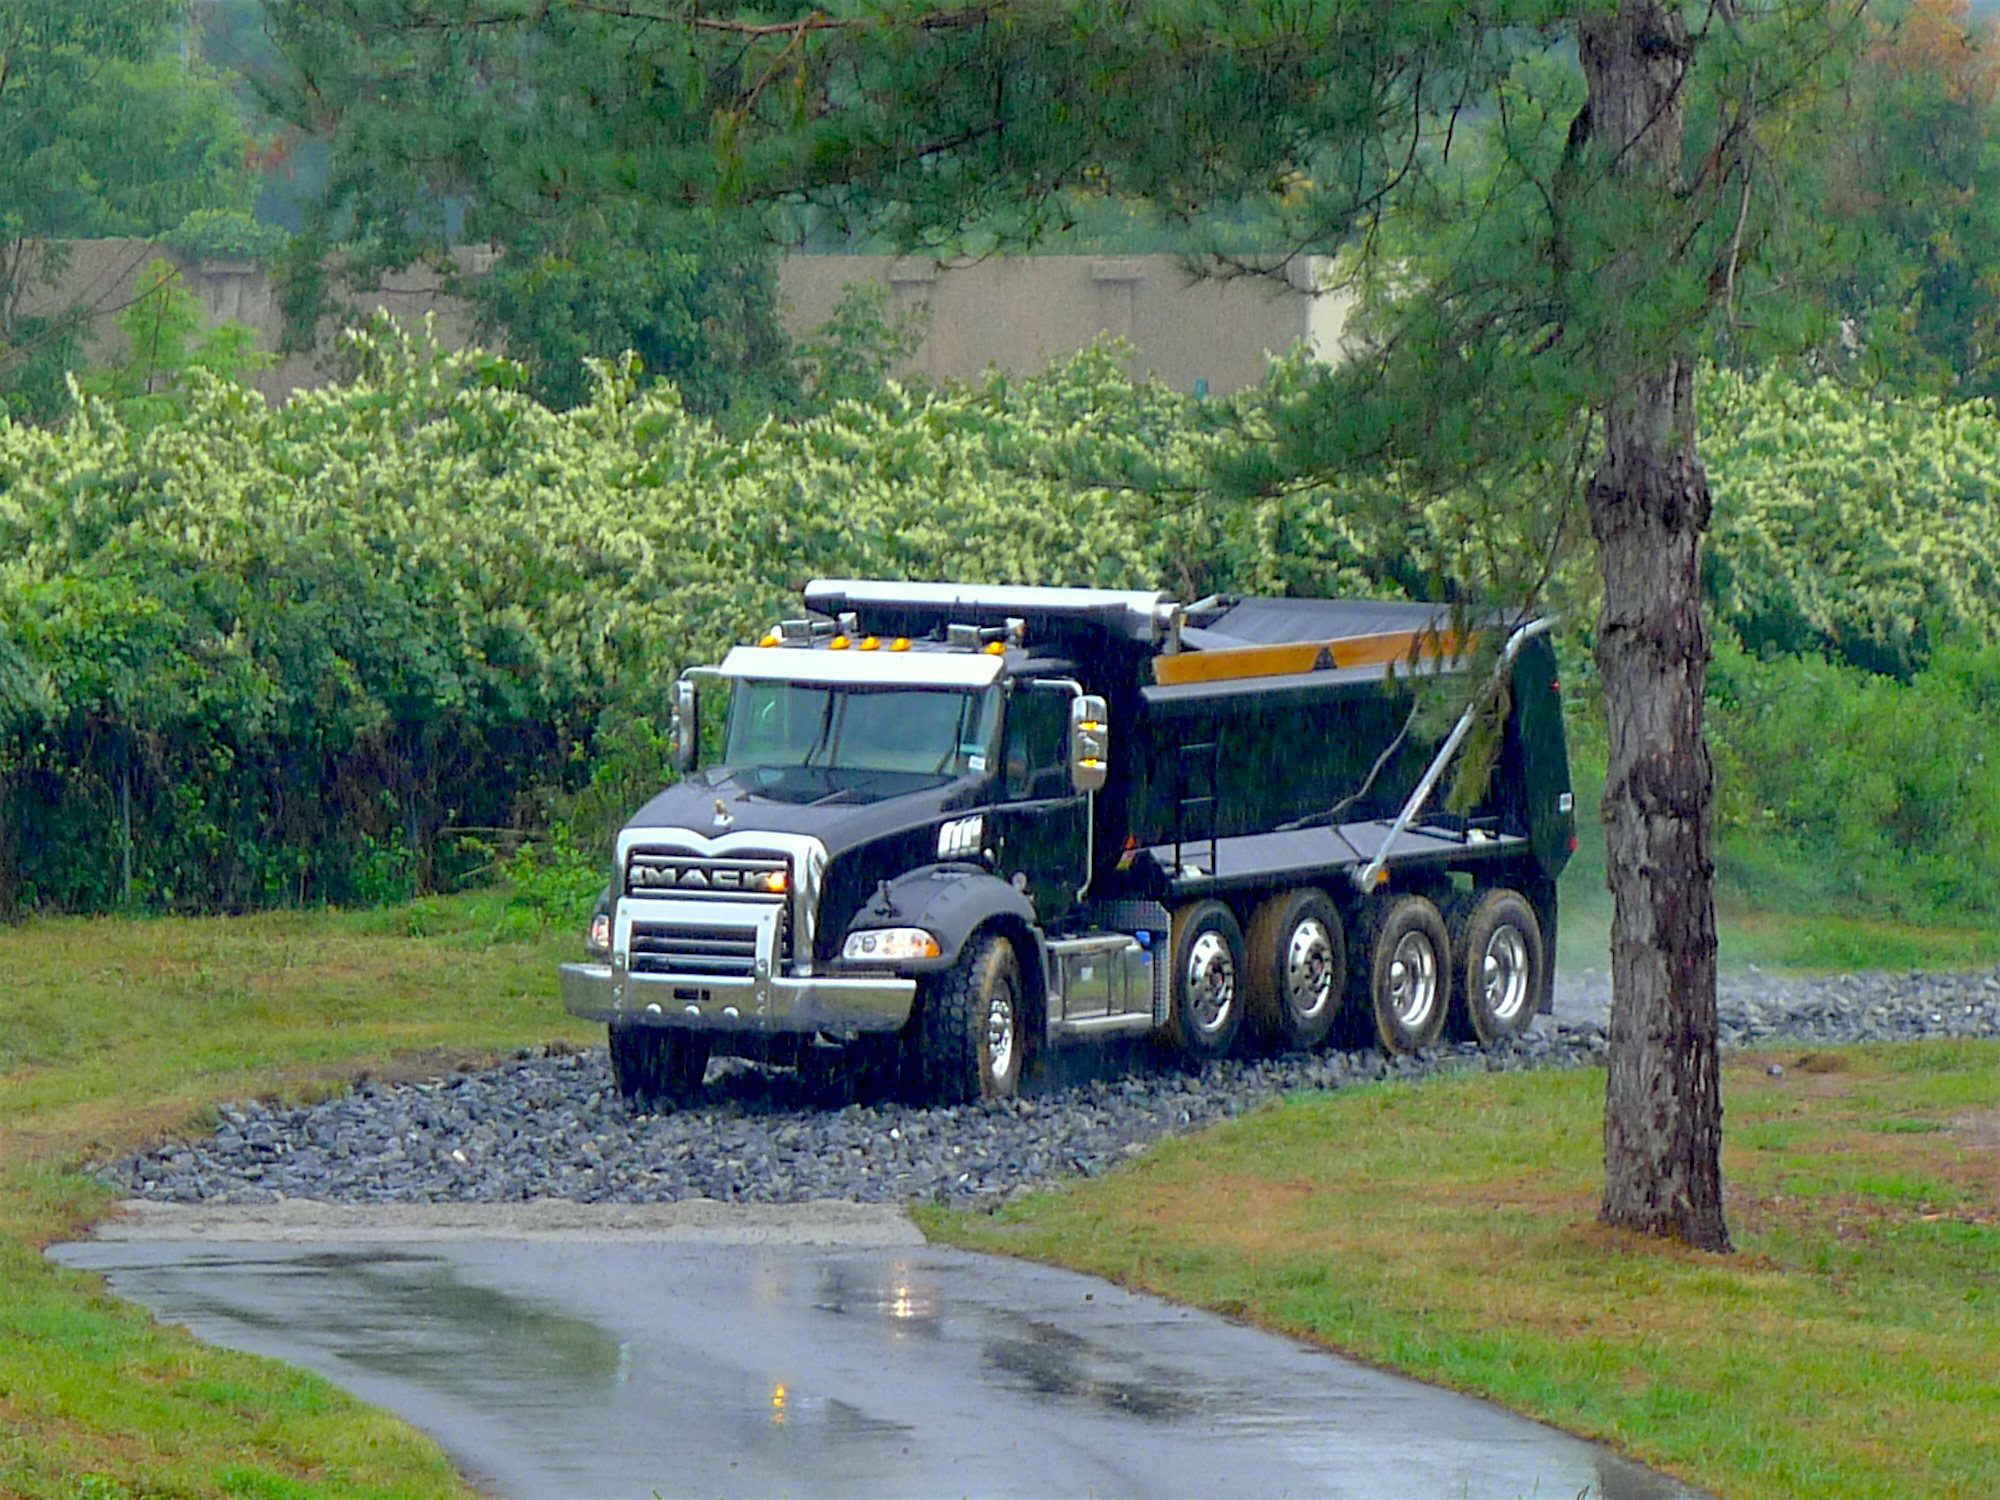 Test Drive: Backing a Mack Granite with 70k-lb  load uphill